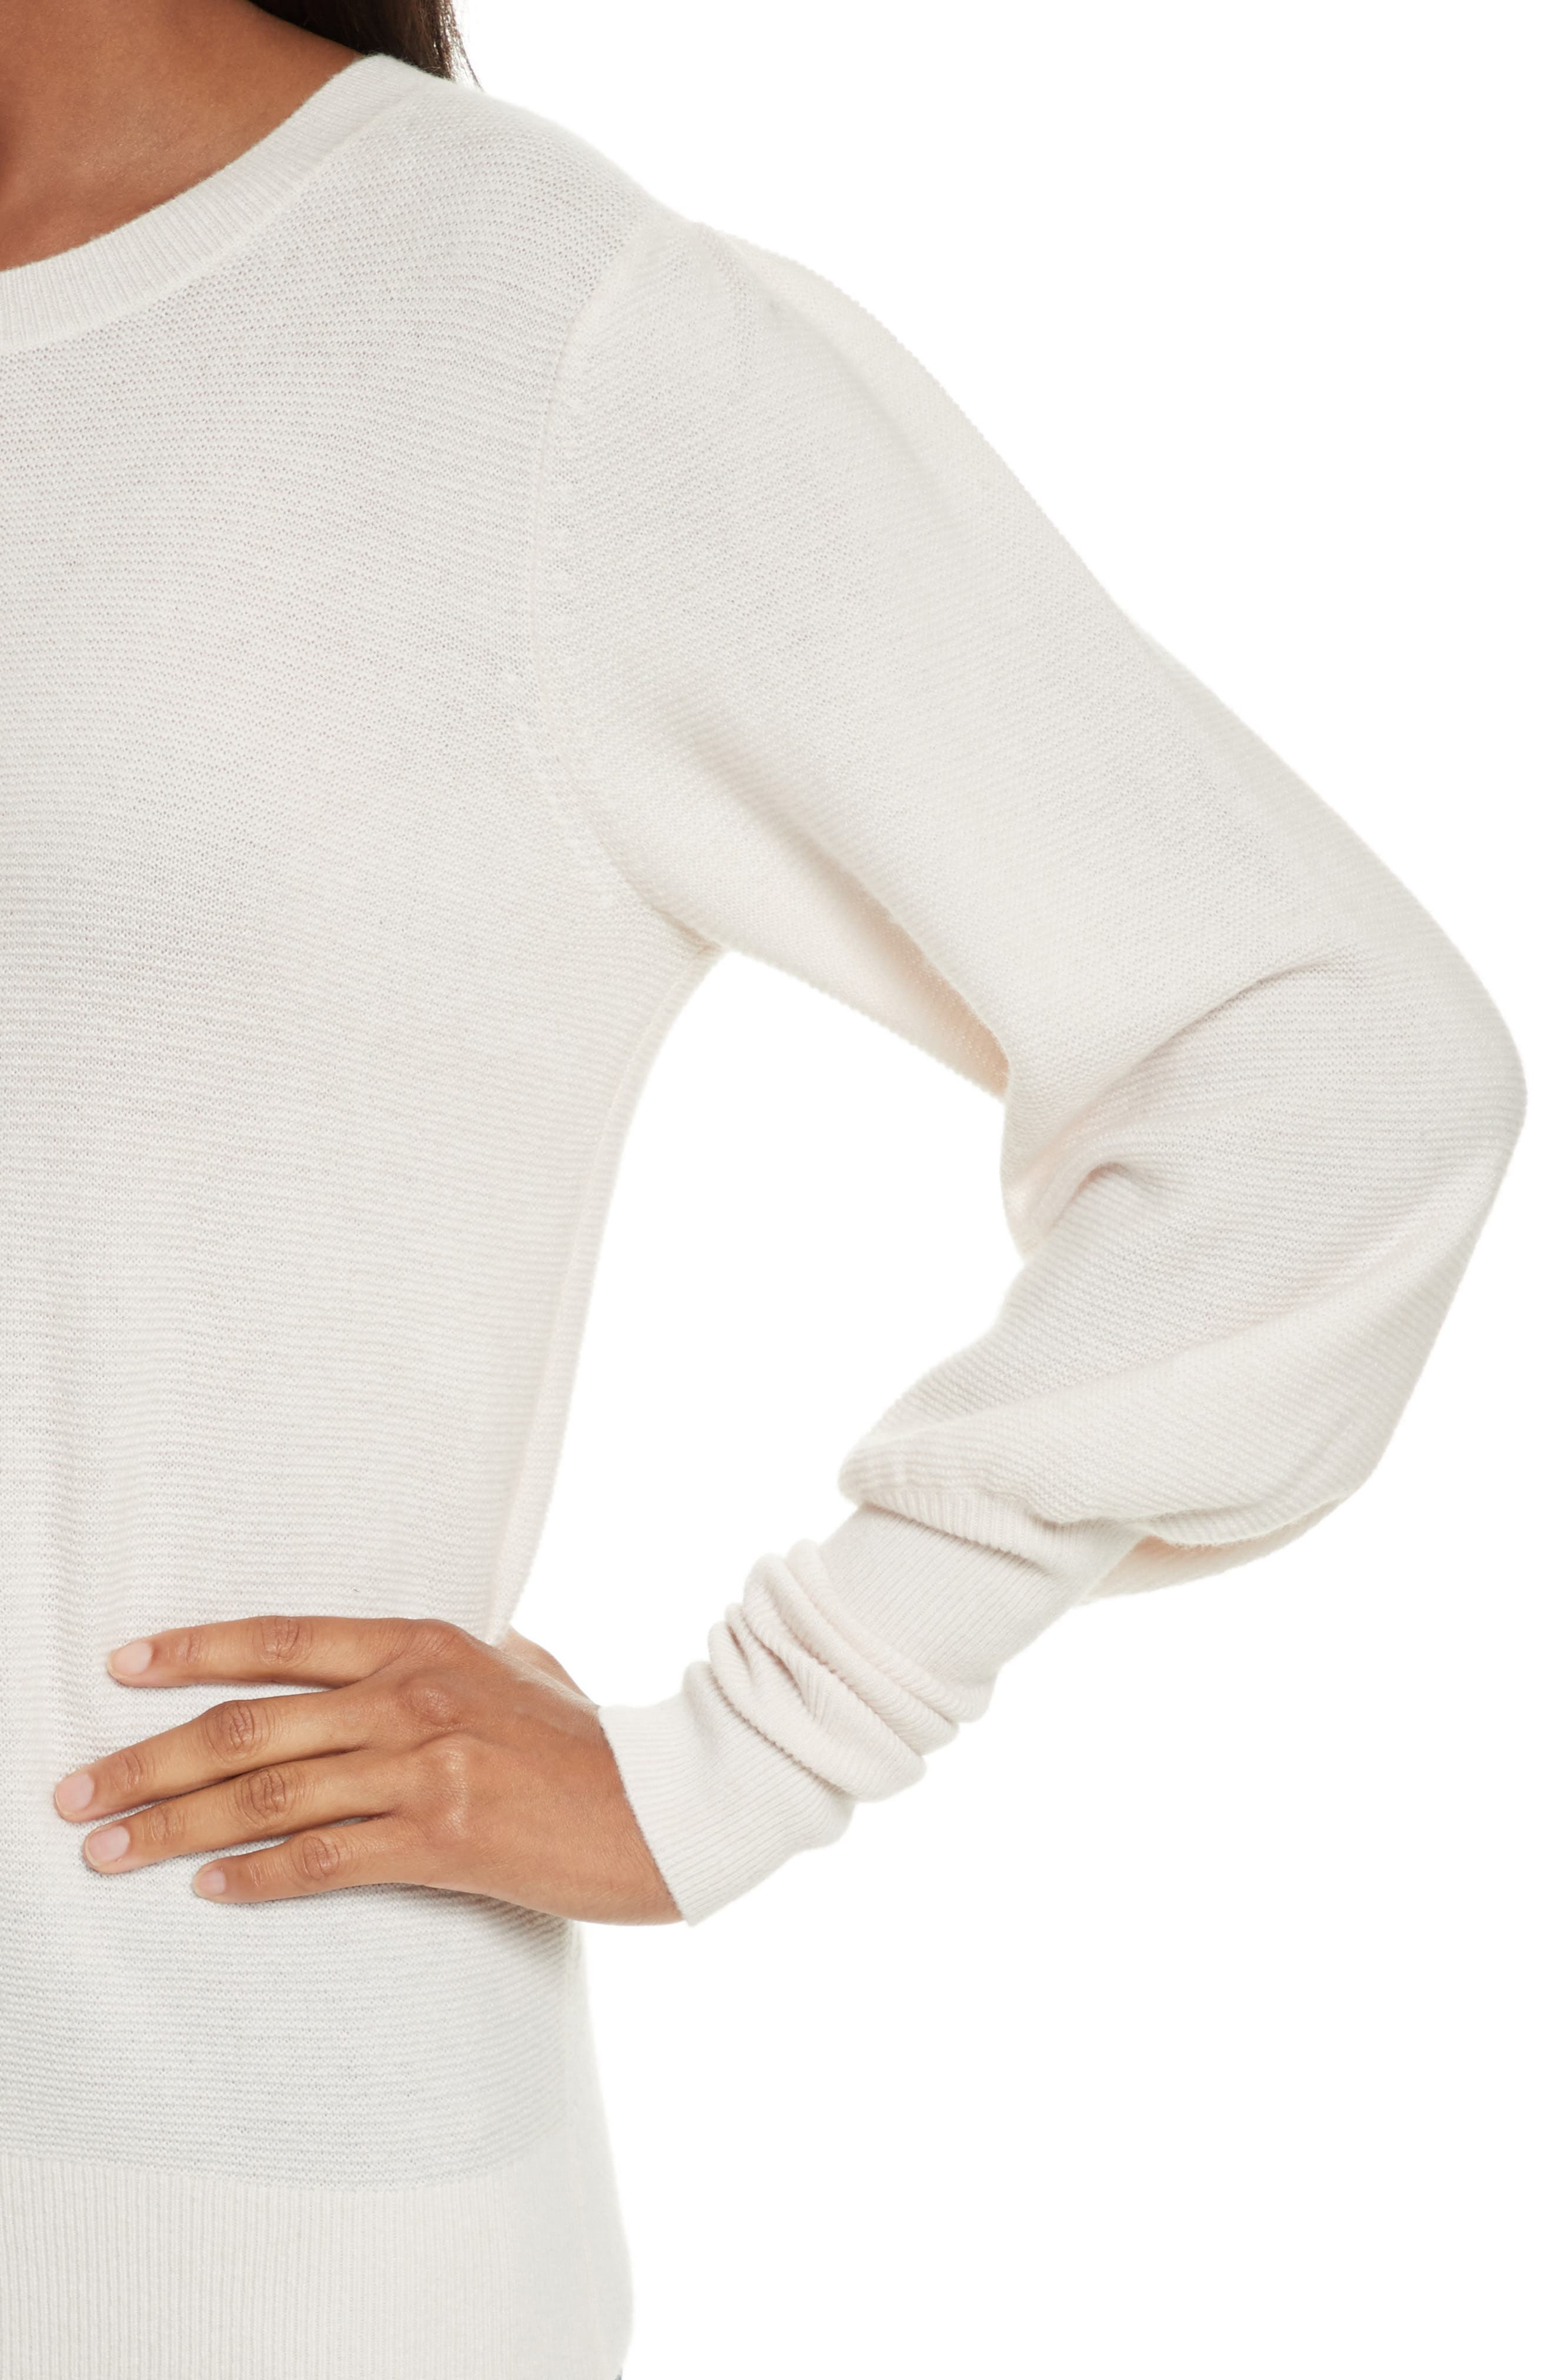 Noely Wool and Cashmere Sweater,                             Alternate thumbnail 8, color,